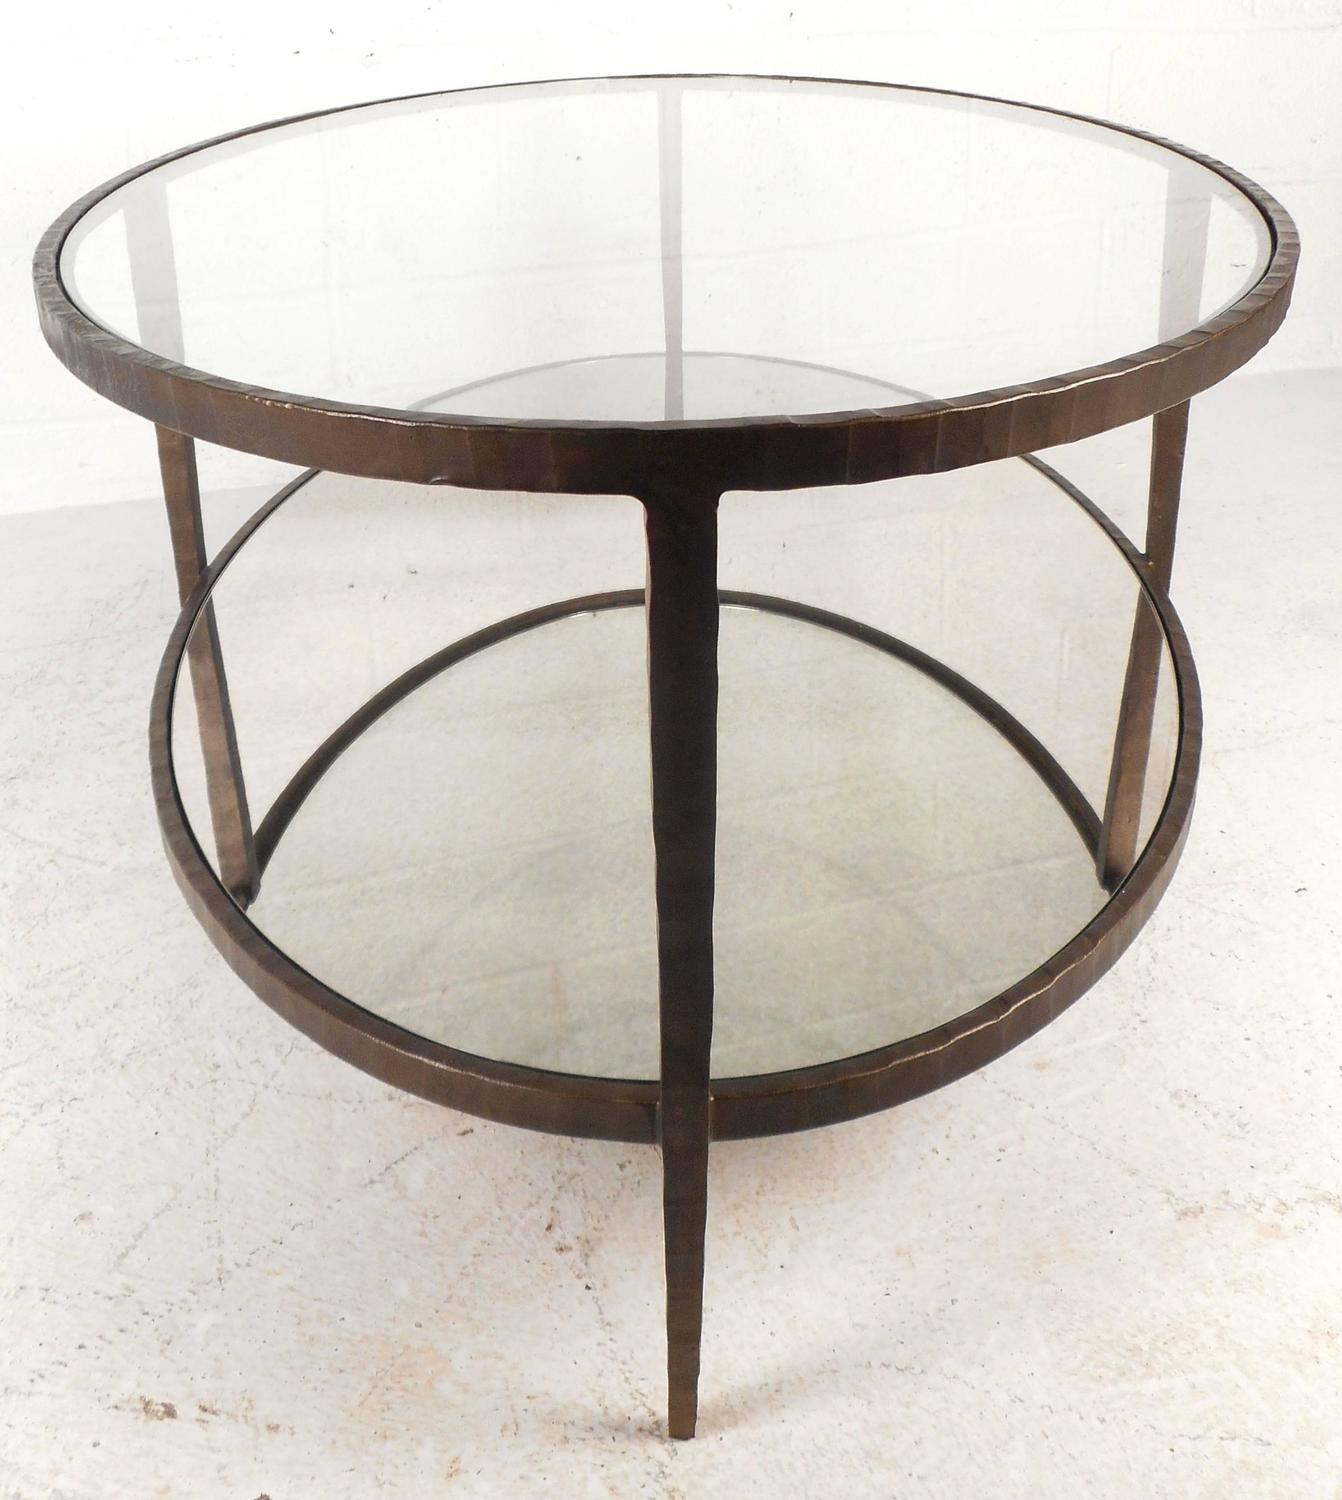 Mid-Century Modern Oval Two-Tier Textured Metal Coffee